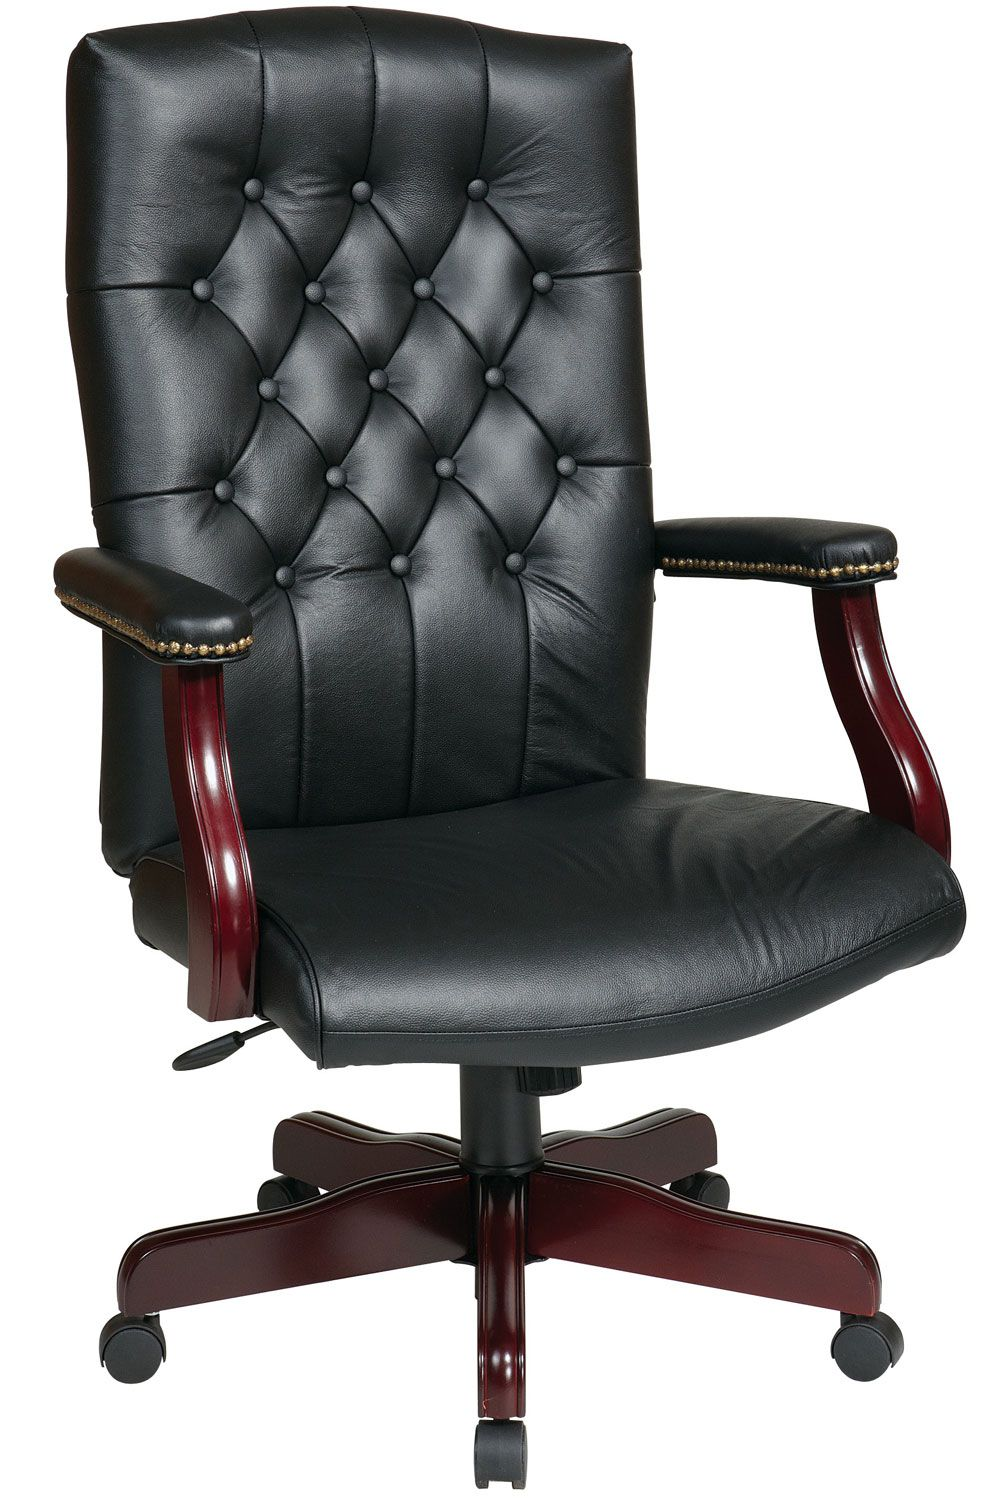 TEX232L 3 Office Star   Traditional Black Leather Executive Office Chair | Leather  Office Chairs